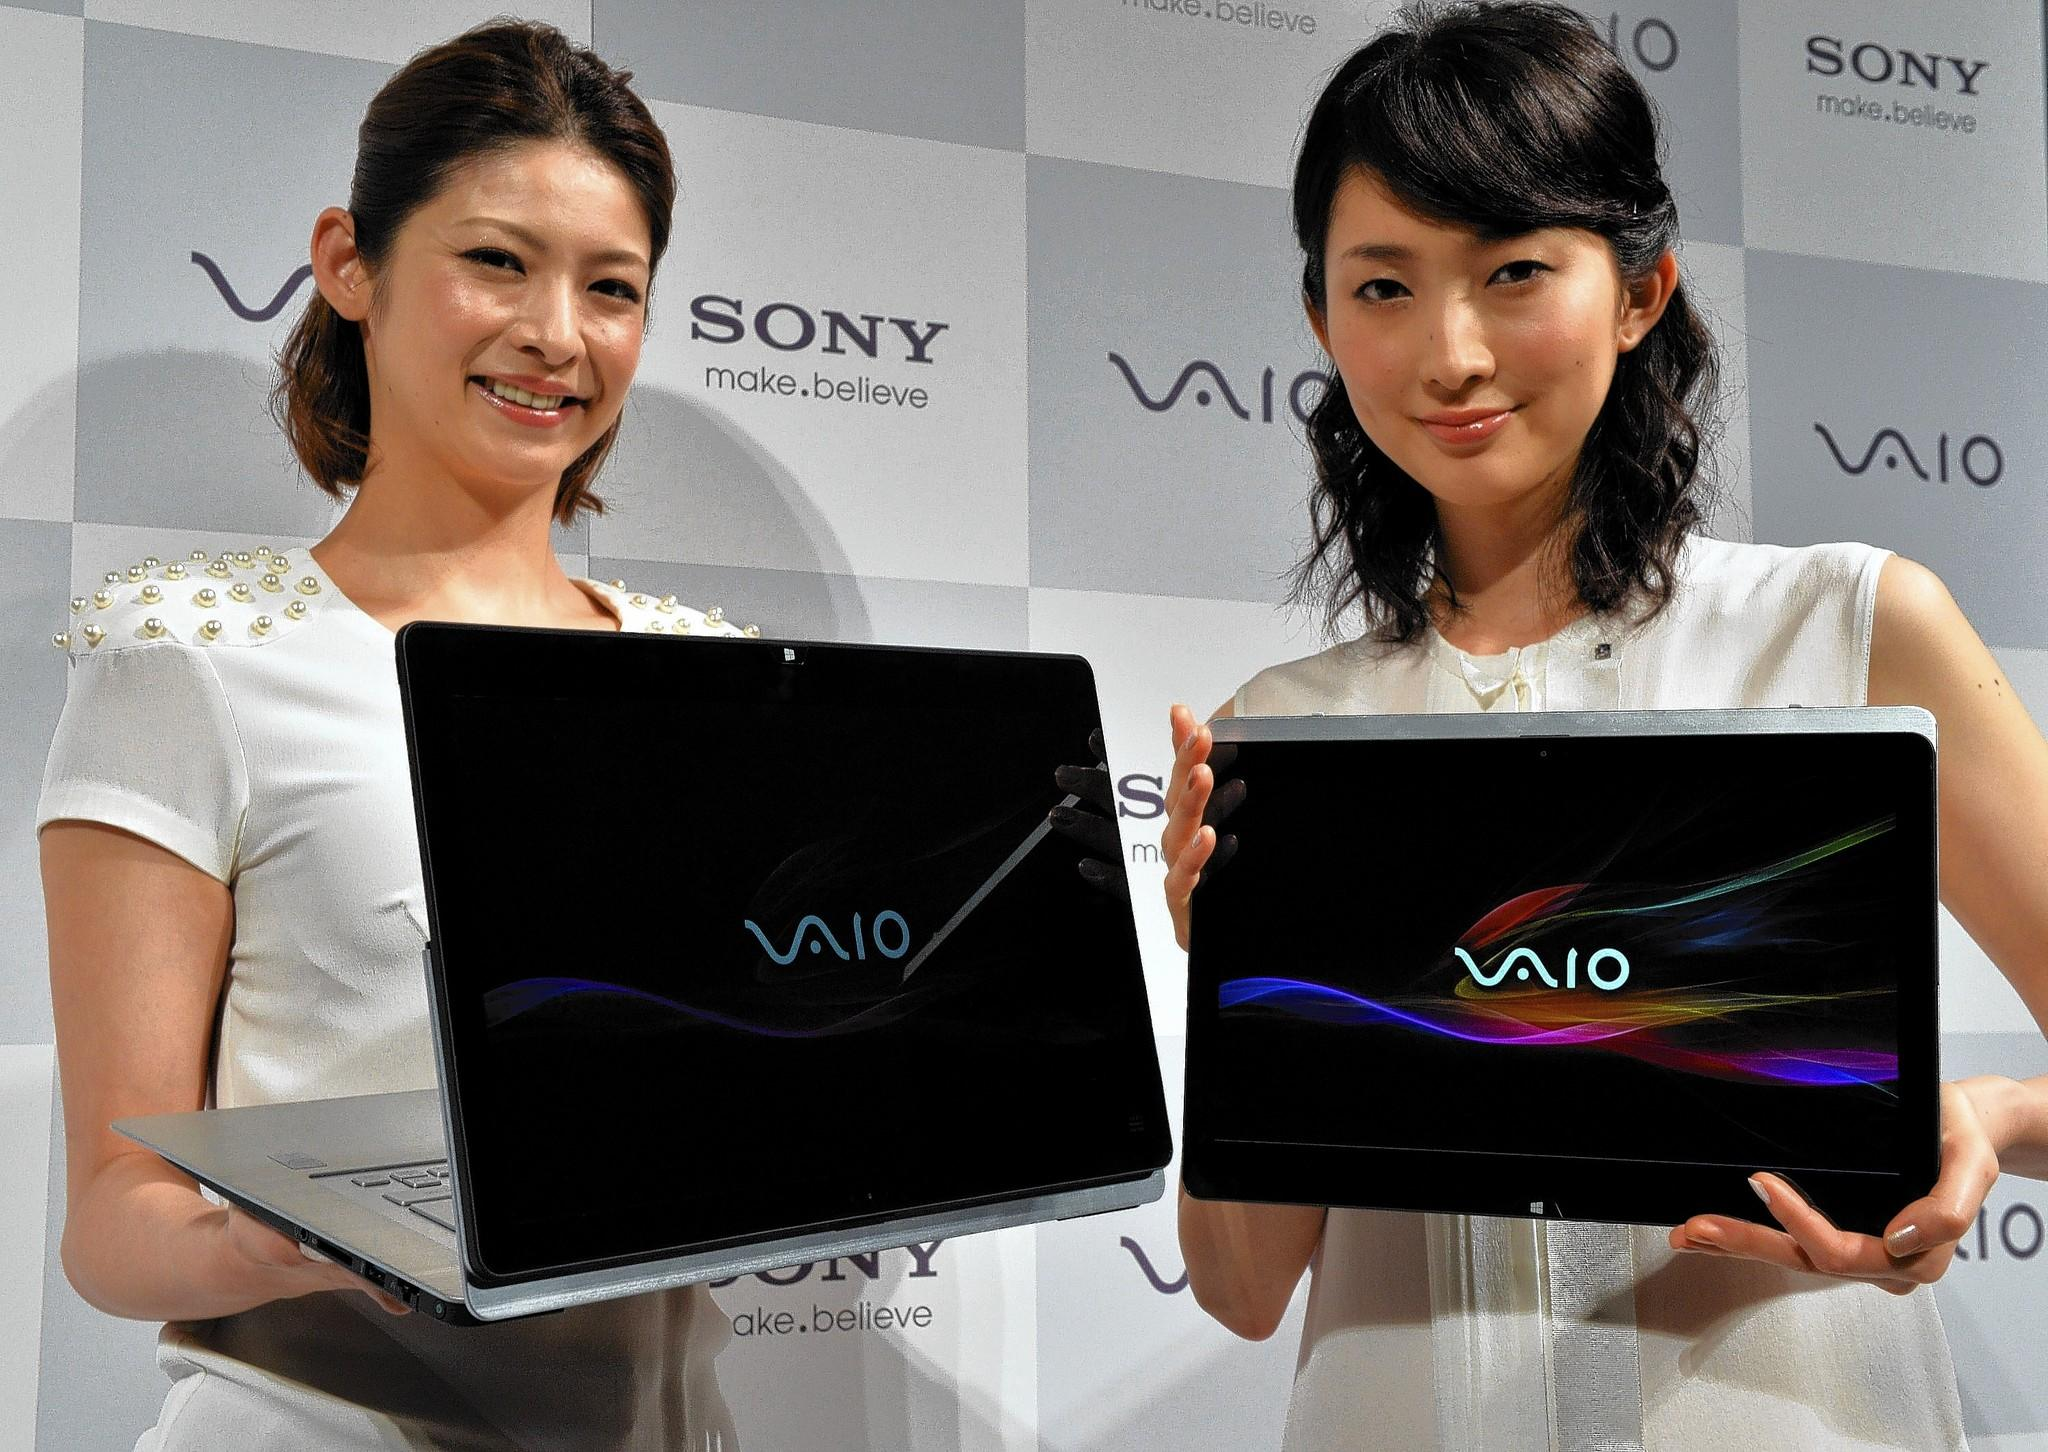 Sony is in talks to sell its Vaio personal computer division to Japan Industrial Partners Inc., a Japanese investment fund. Above, Sony shows off the Vaio Fit ultrabook.